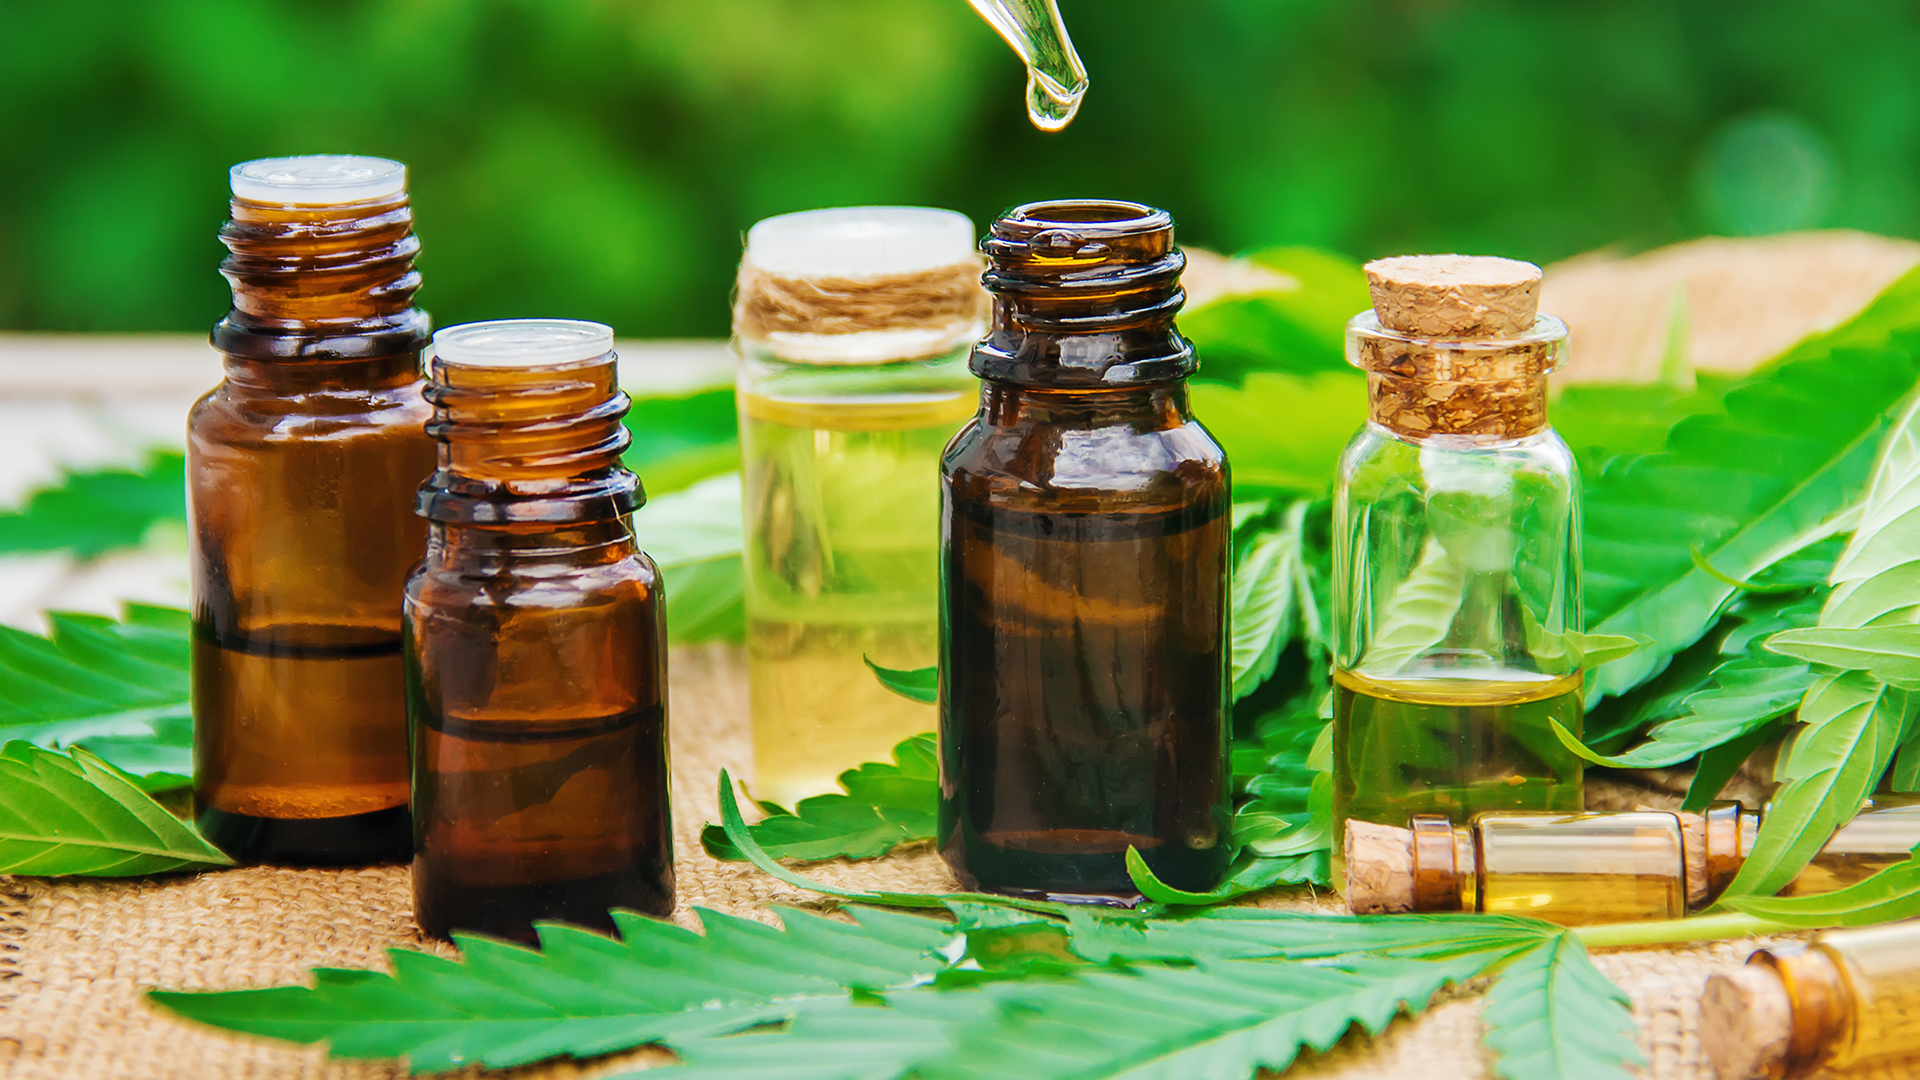 How to Use CBD Oil for Anxiousness